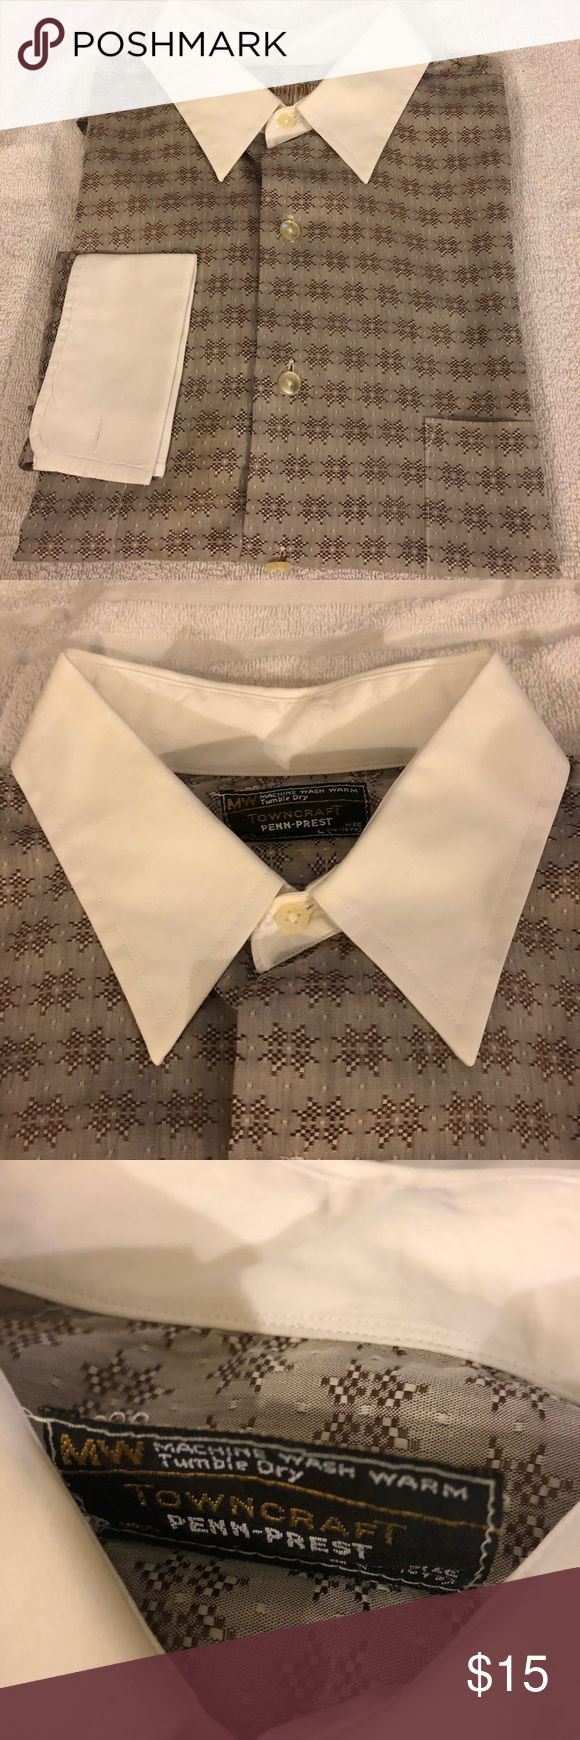 Towncraft Brown Star Pattern French Cuff Shirt L Towncraft Brown and Tan Star Pattern With White Collar and French Cuff Shirt size L 16-16.5 34/35! Great condition!  Please make reasonable offers and bundle! Ask questions :) Towncraft Shirts Dress Shirts